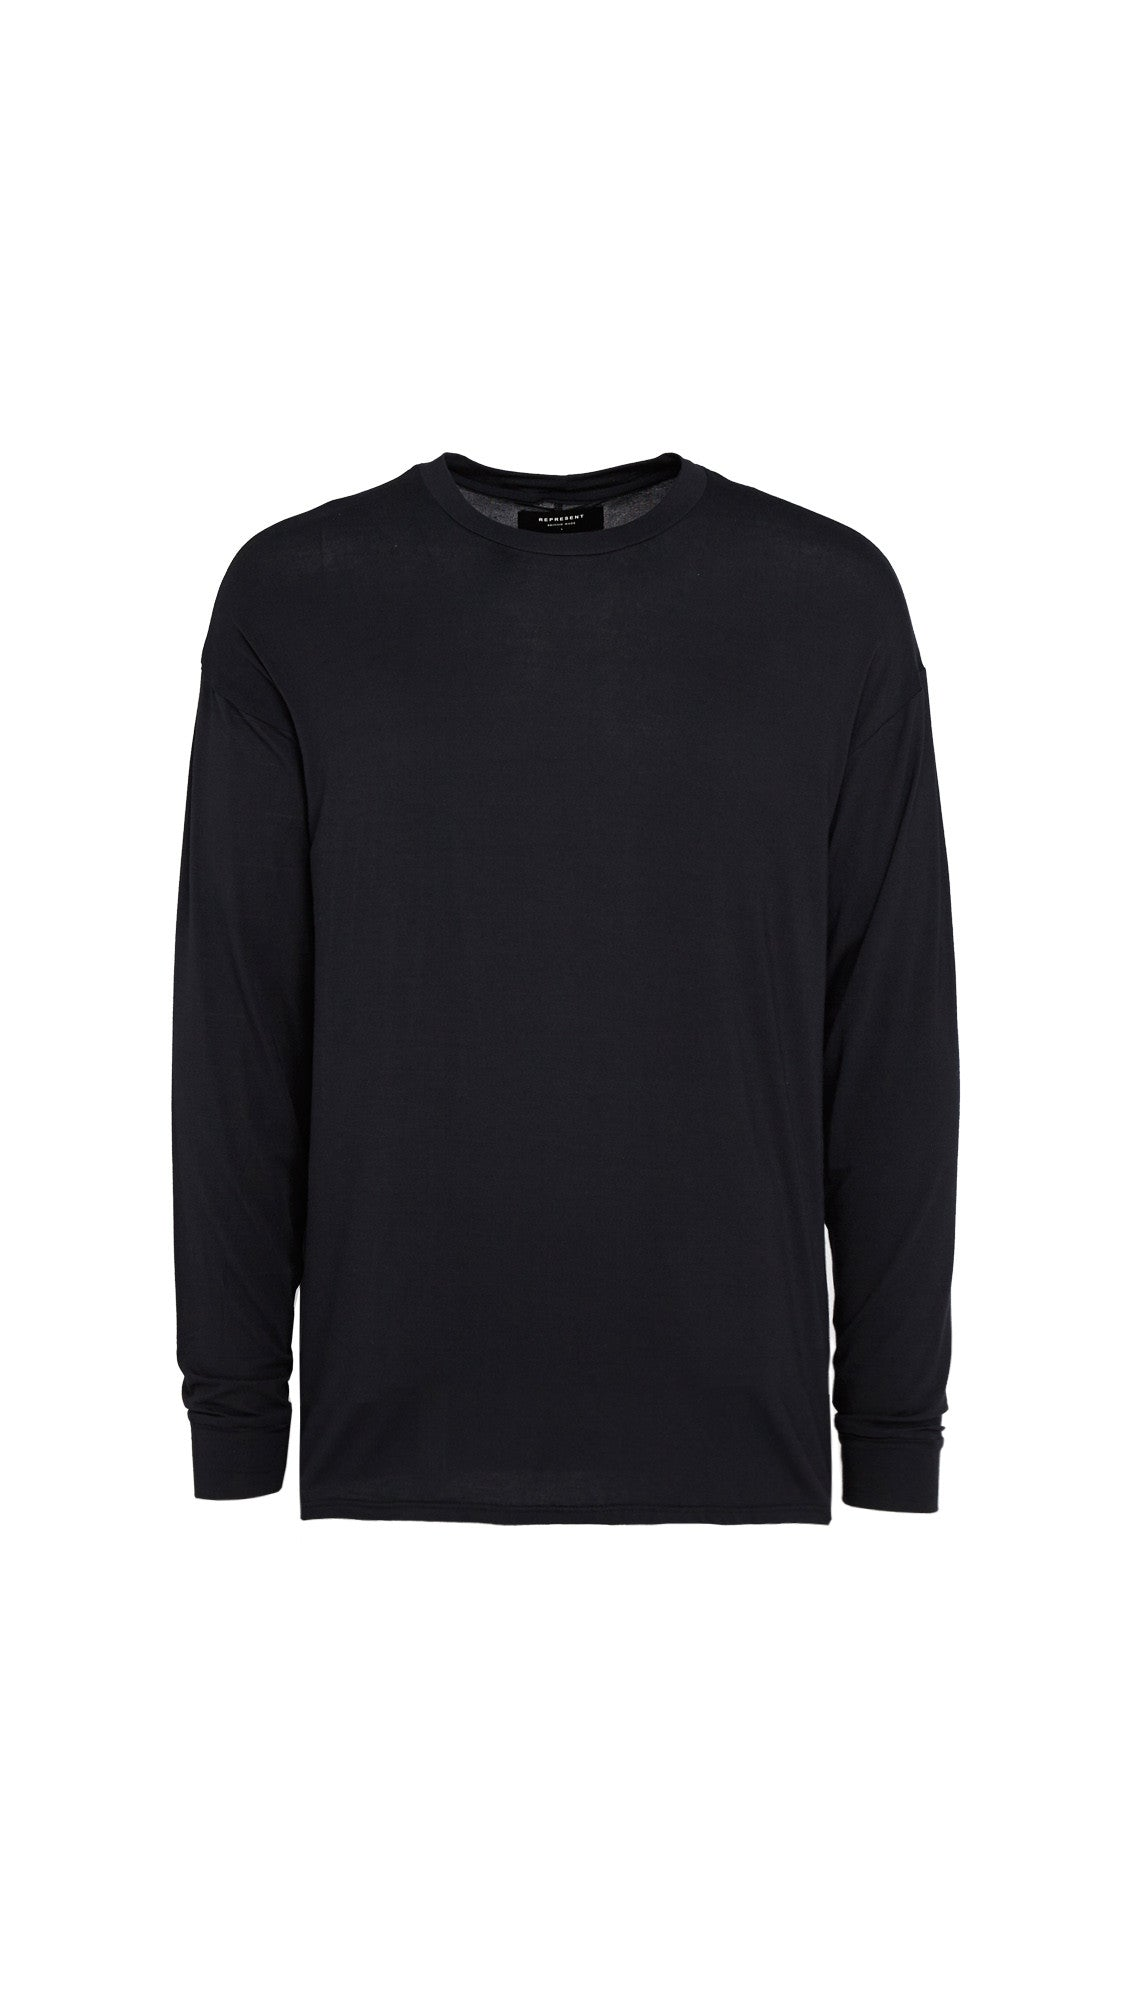 Long Sleeve Essential T-shirt - Black